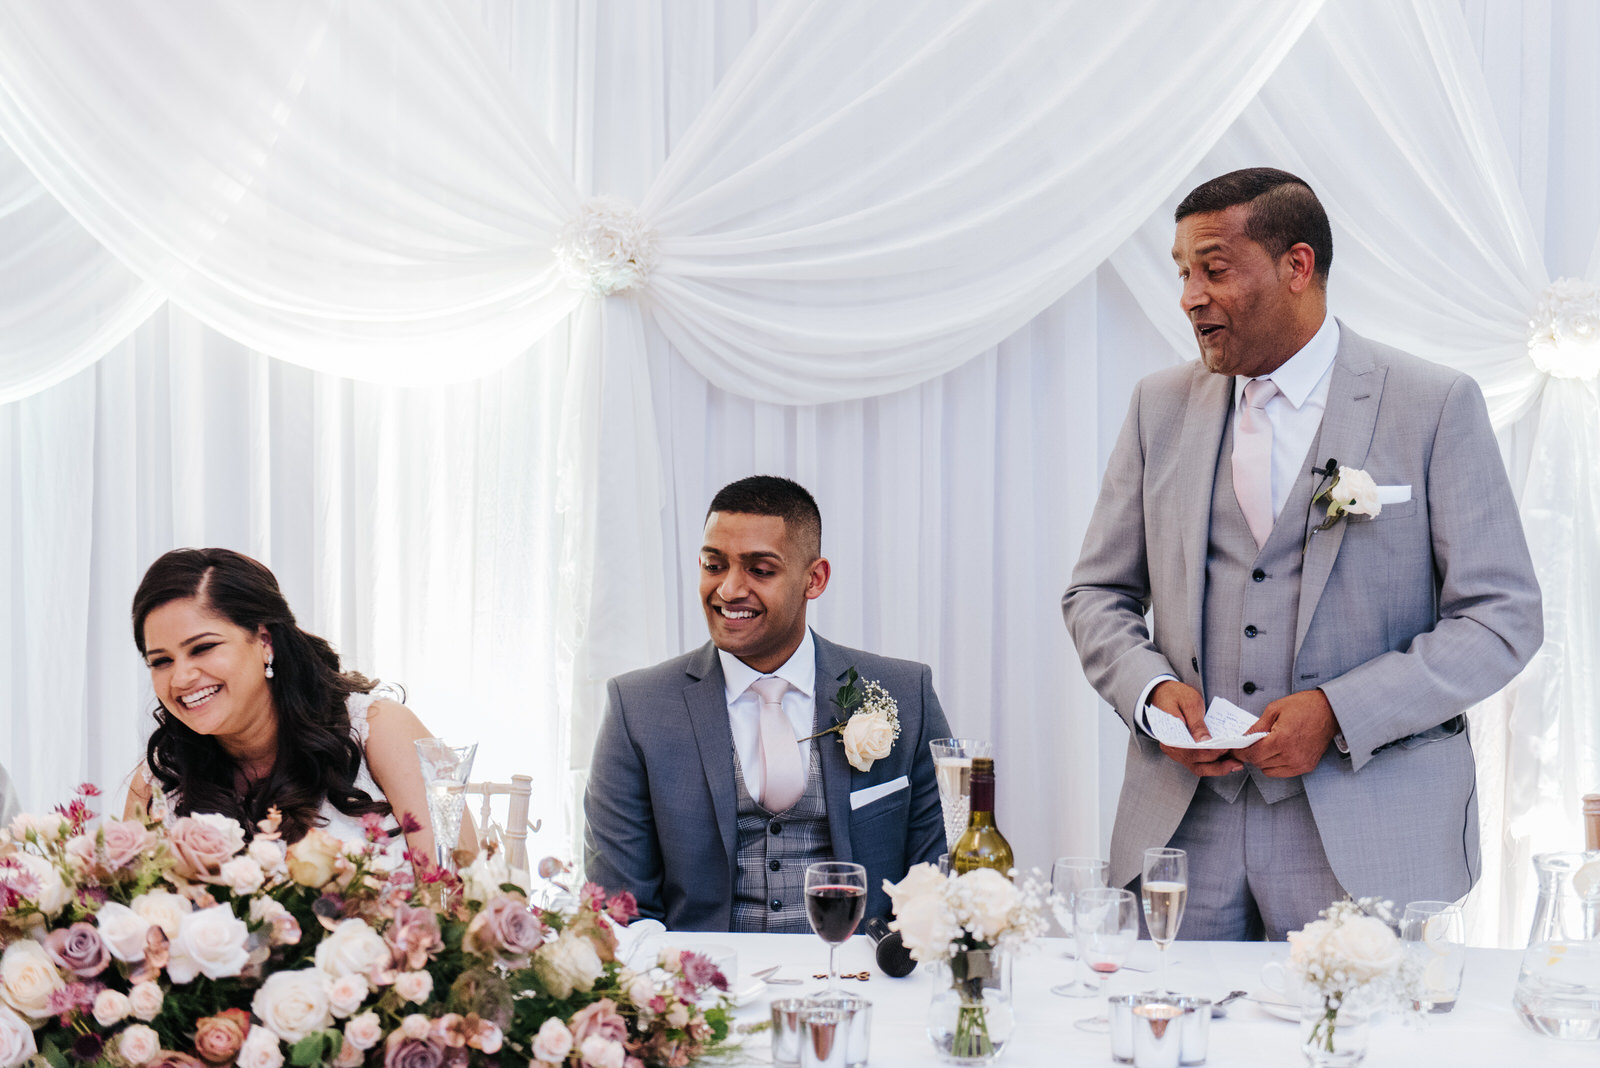 Father of the groom delivers his speech as bride and groom sit a